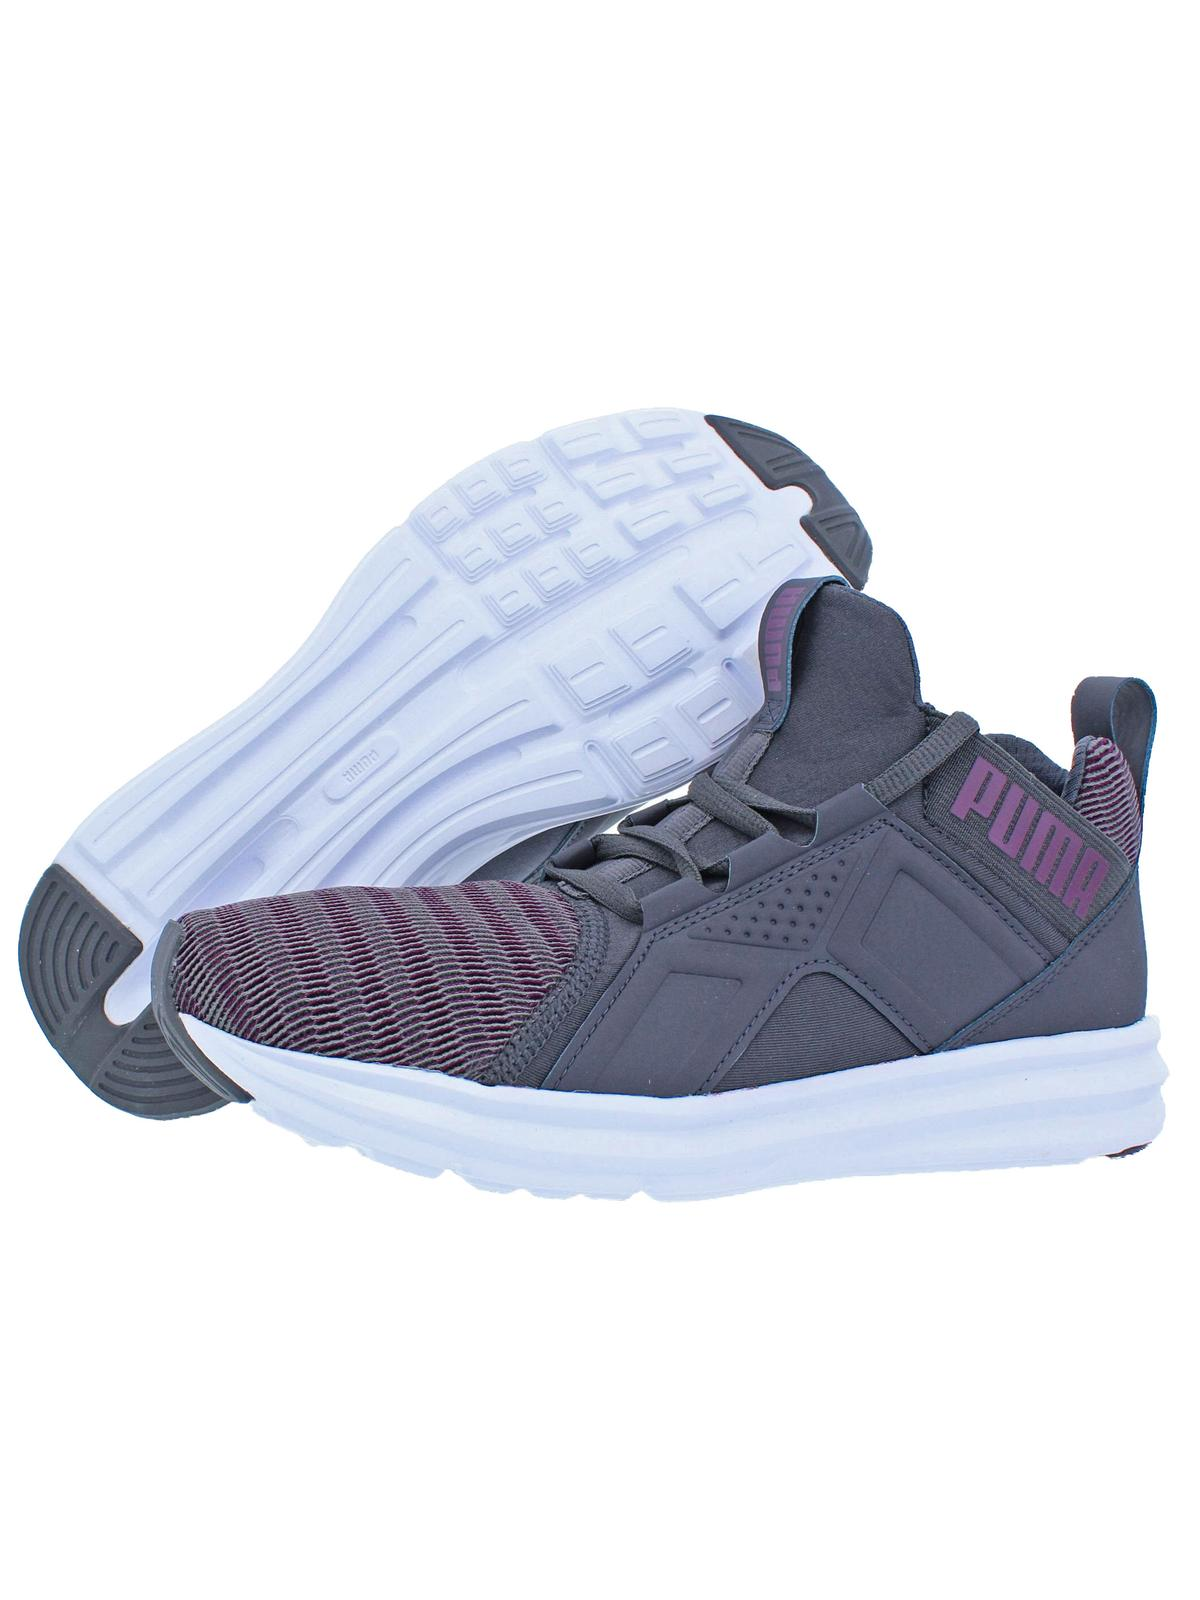 ed5a9d55045 PUMA - Puma Womens Enzo Colorshift Soft Foam Trainer High Top Sneakers -  Walmart.com